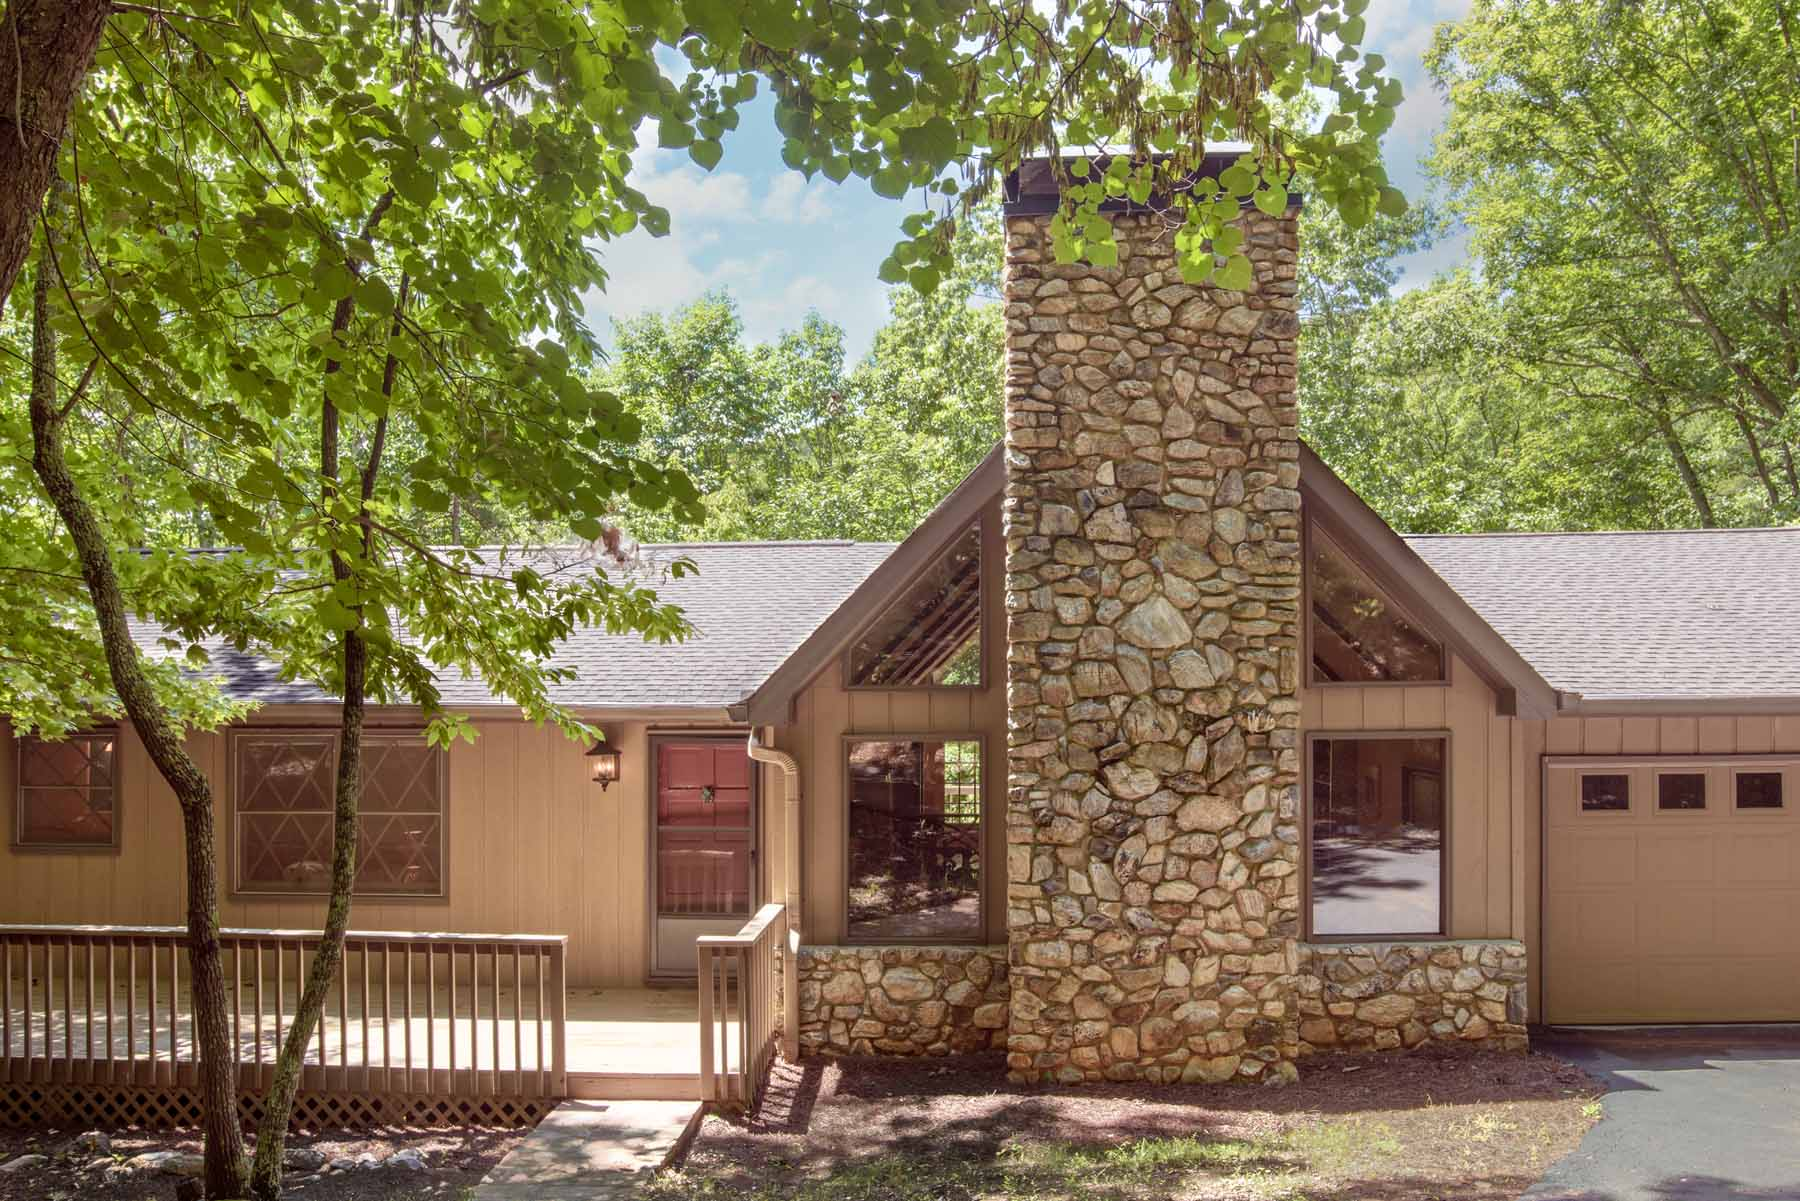 Single Family Home for Sale at Four Bedroom Home On a Creek 1 Hour North of Atlanta 183 Lone Wolf Trail Big Canoe, Georgia, 30143 United States